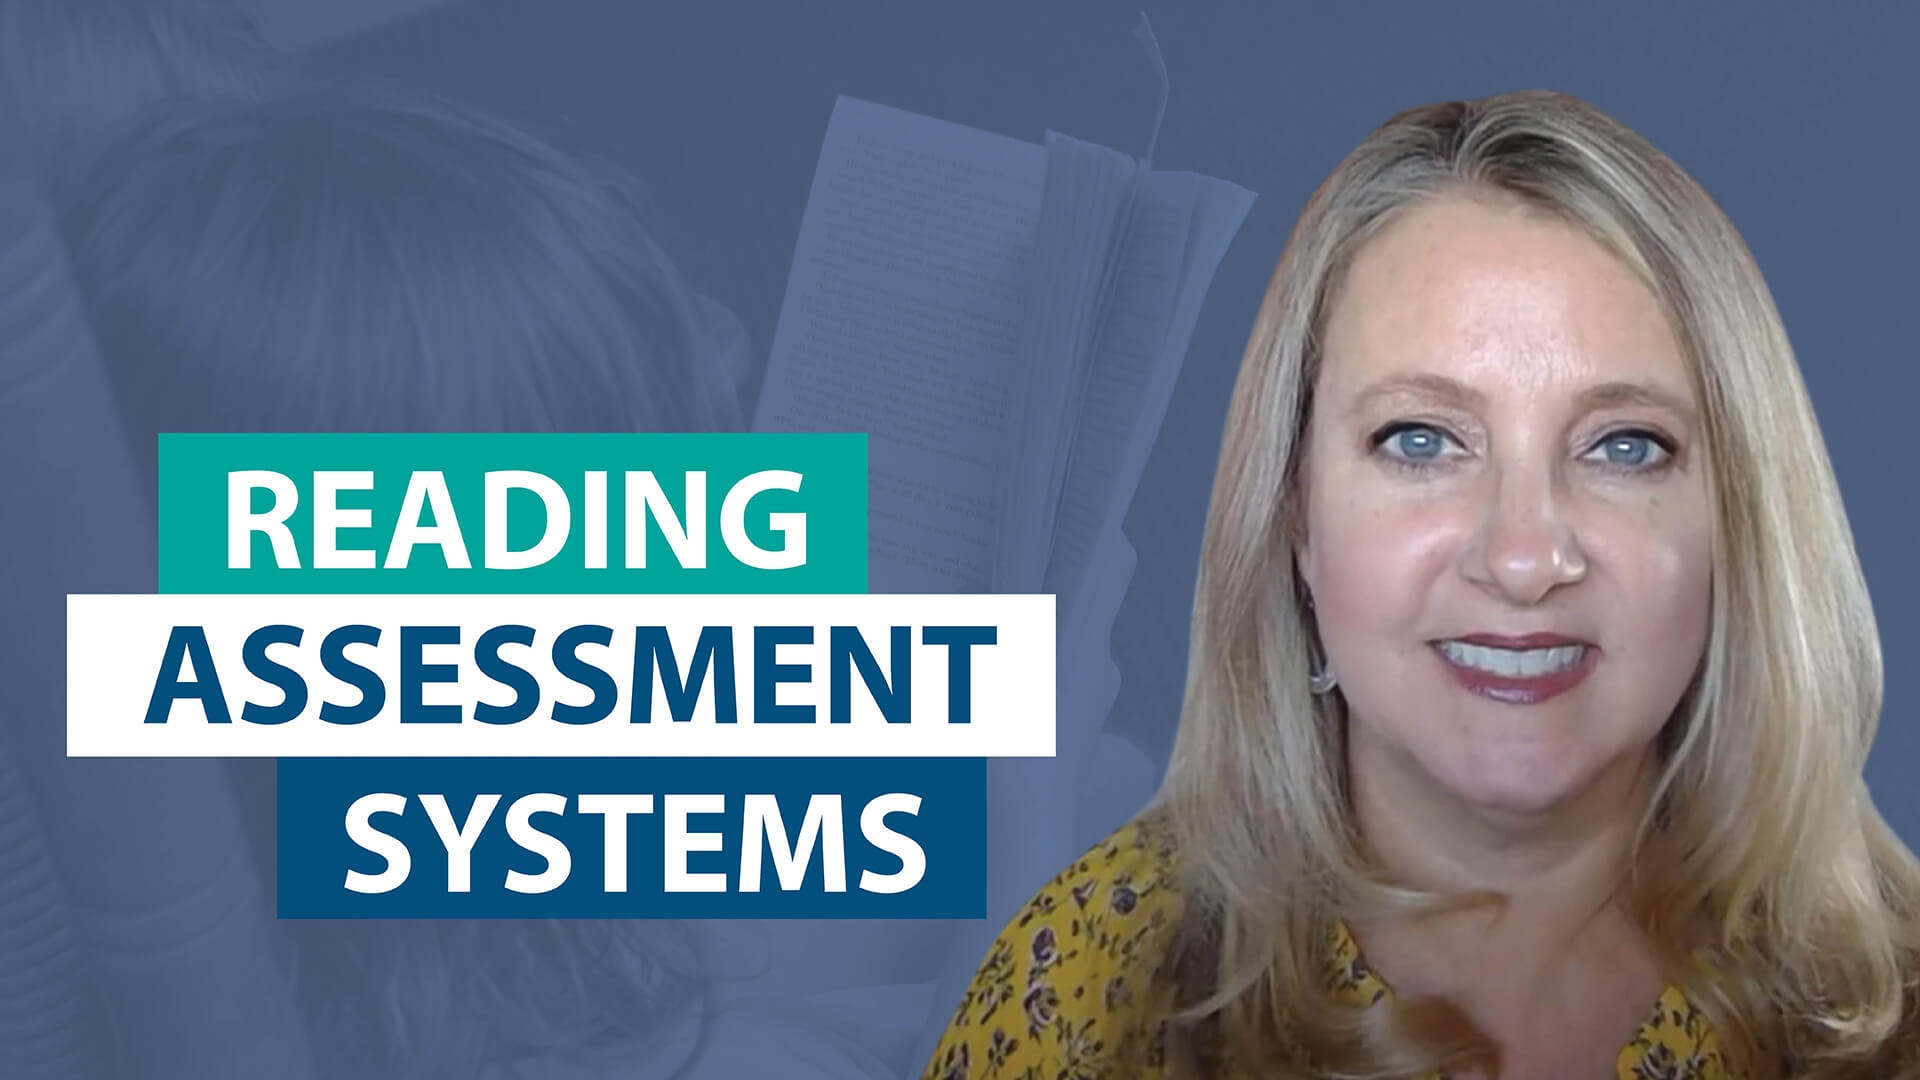 Ask Smekens: Which assessment should I use to measure reading progess?